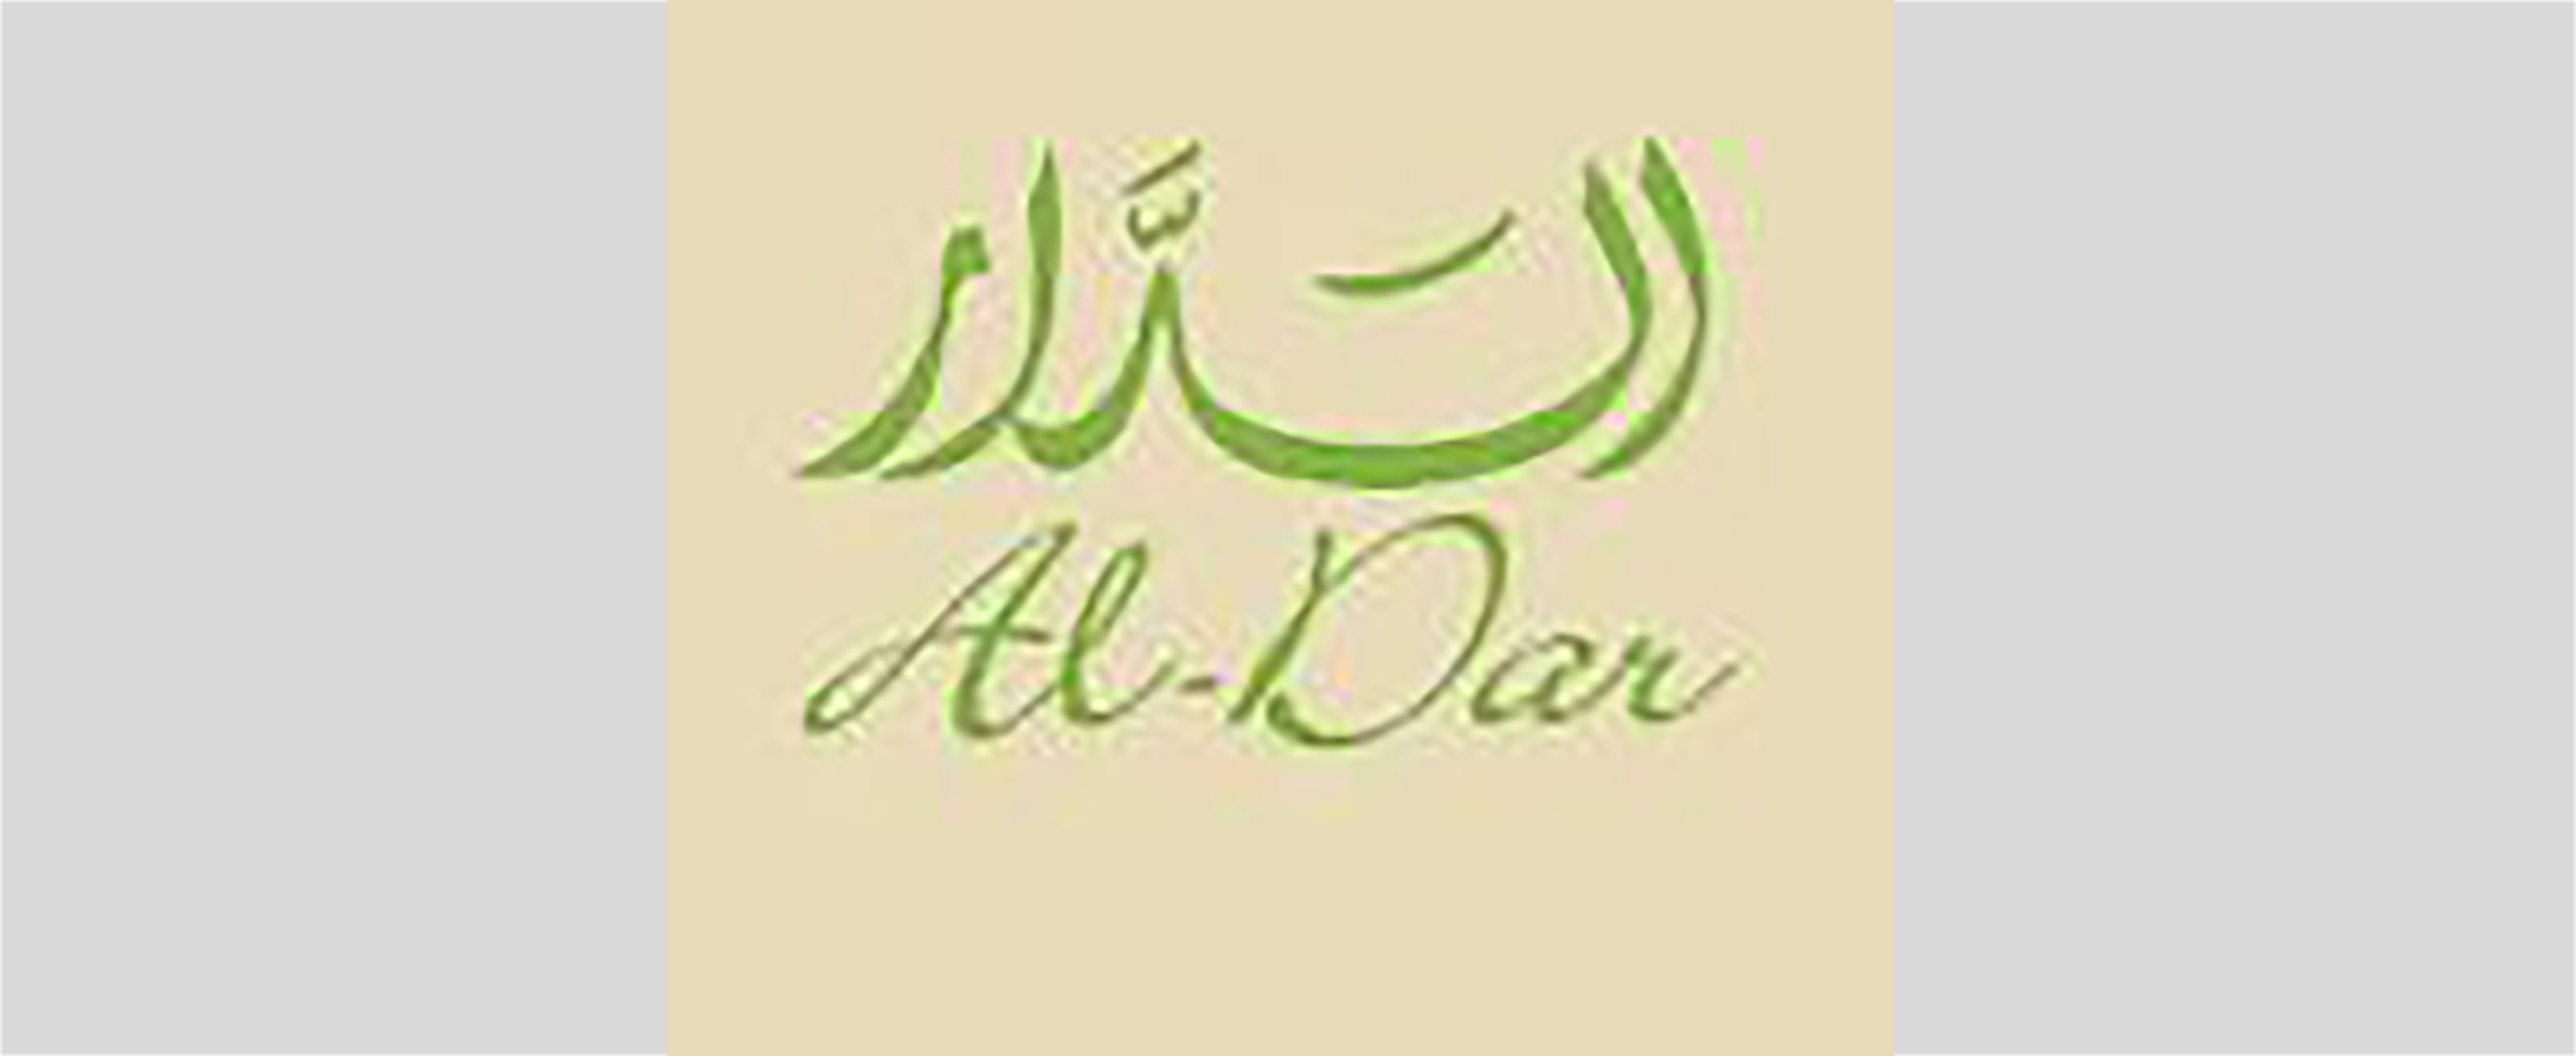 Al-Dar e.V. - Frauenverein - Berlin